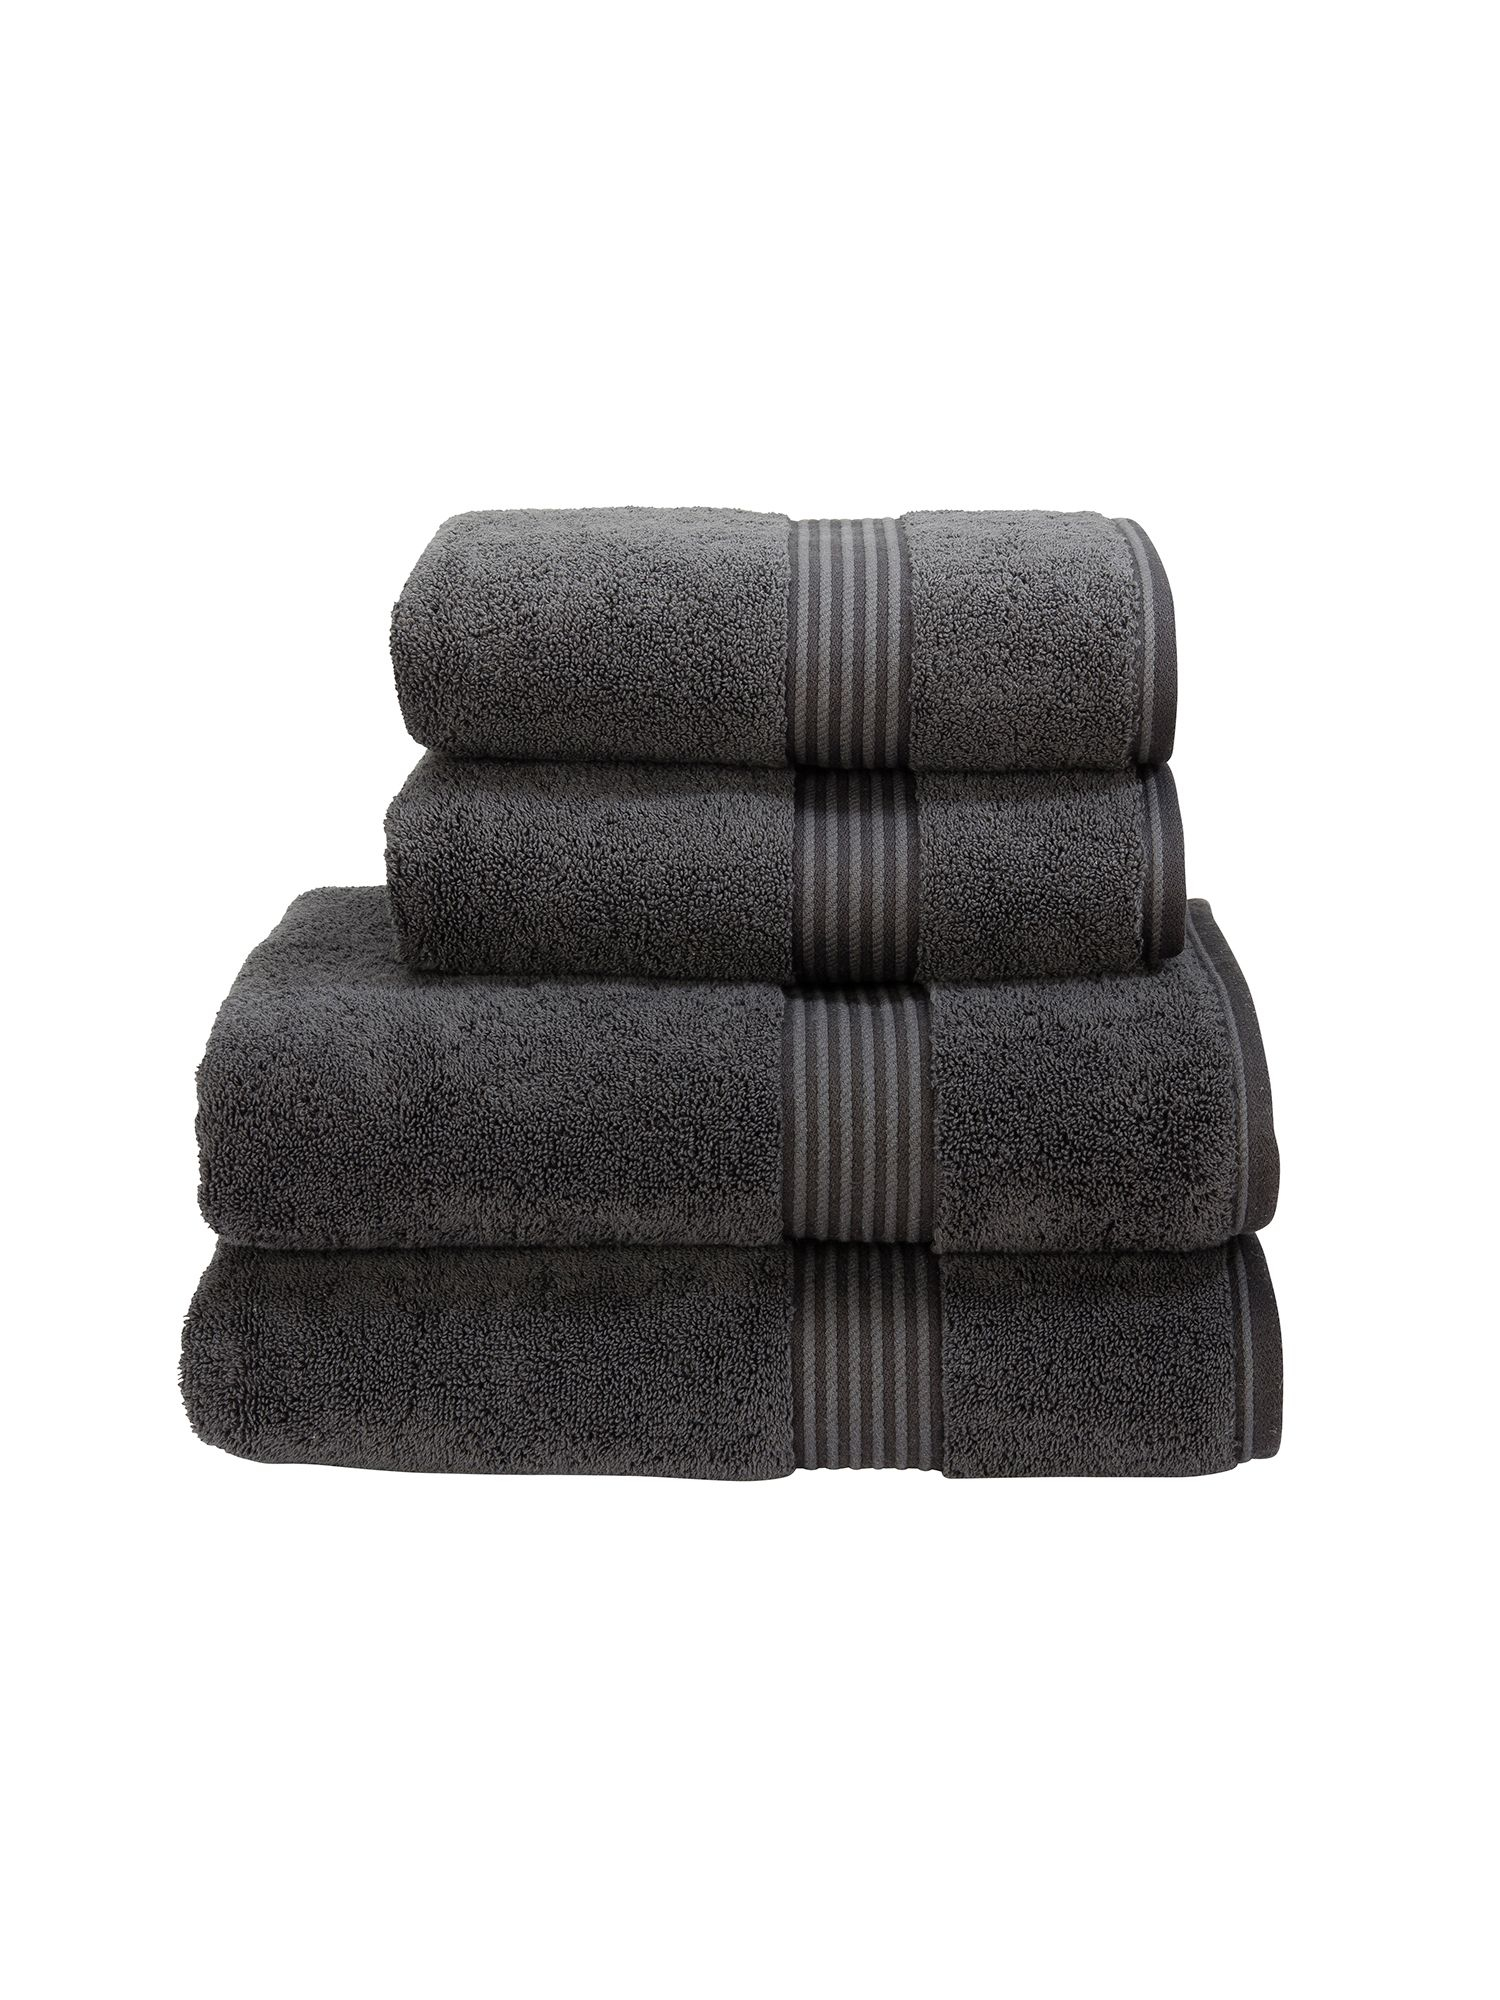 Supreme hygro towels graphite